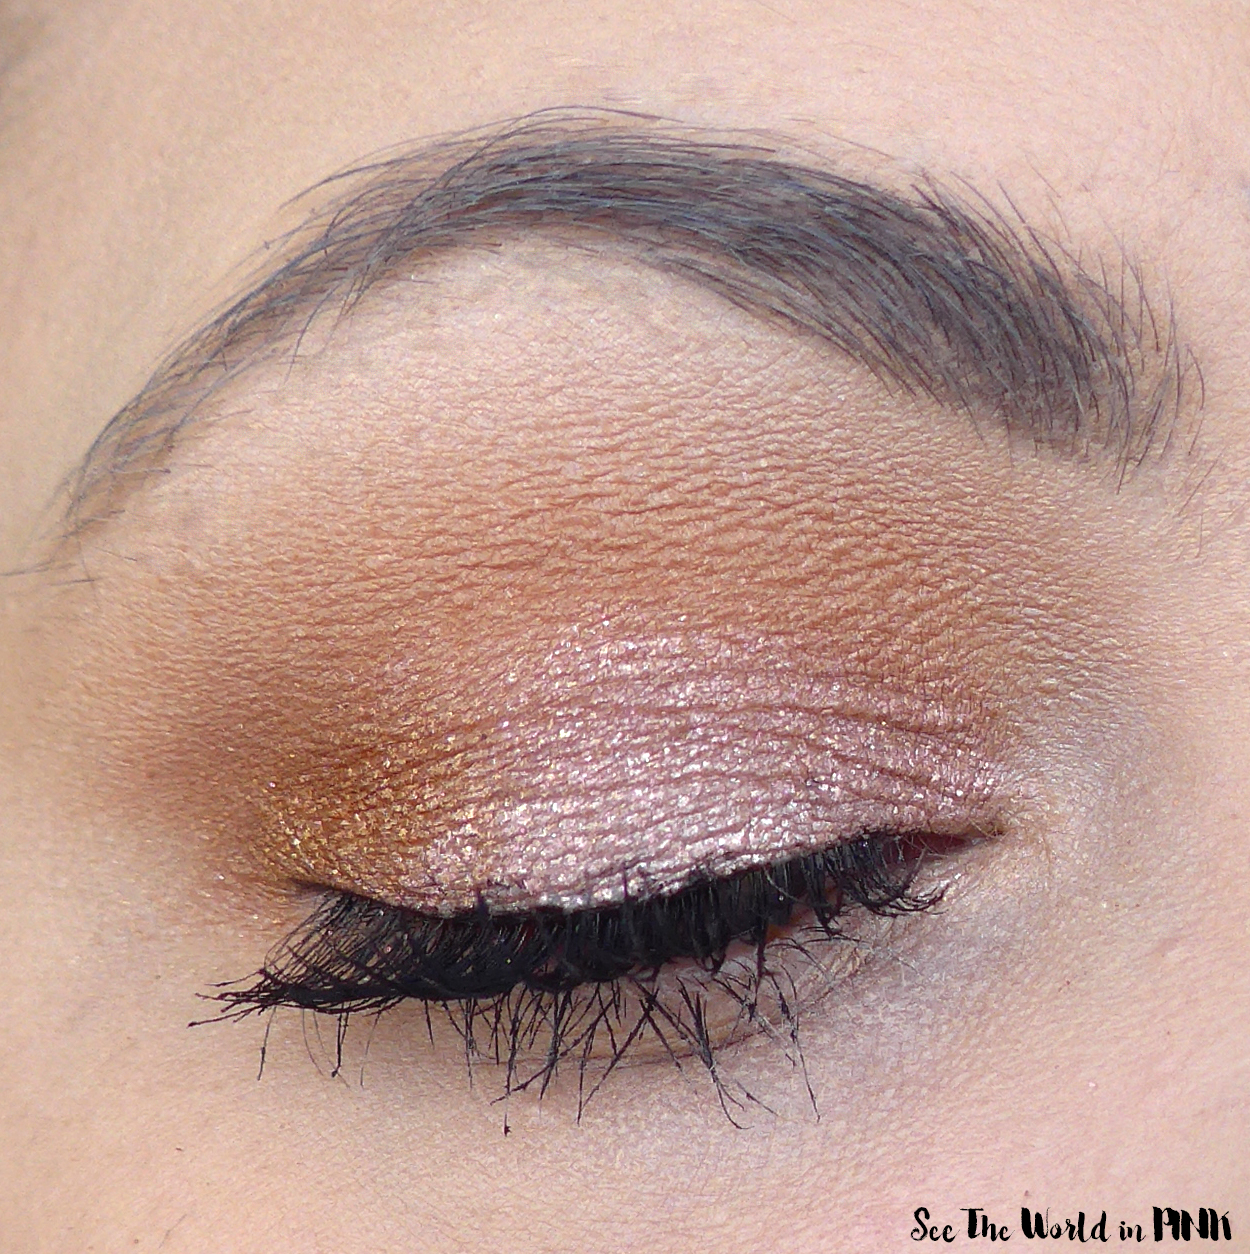 Too Faced Peaches & Cream Crystal Whips Long-Wearing Shimmering Eye Shadow Veil in Totally Whipped